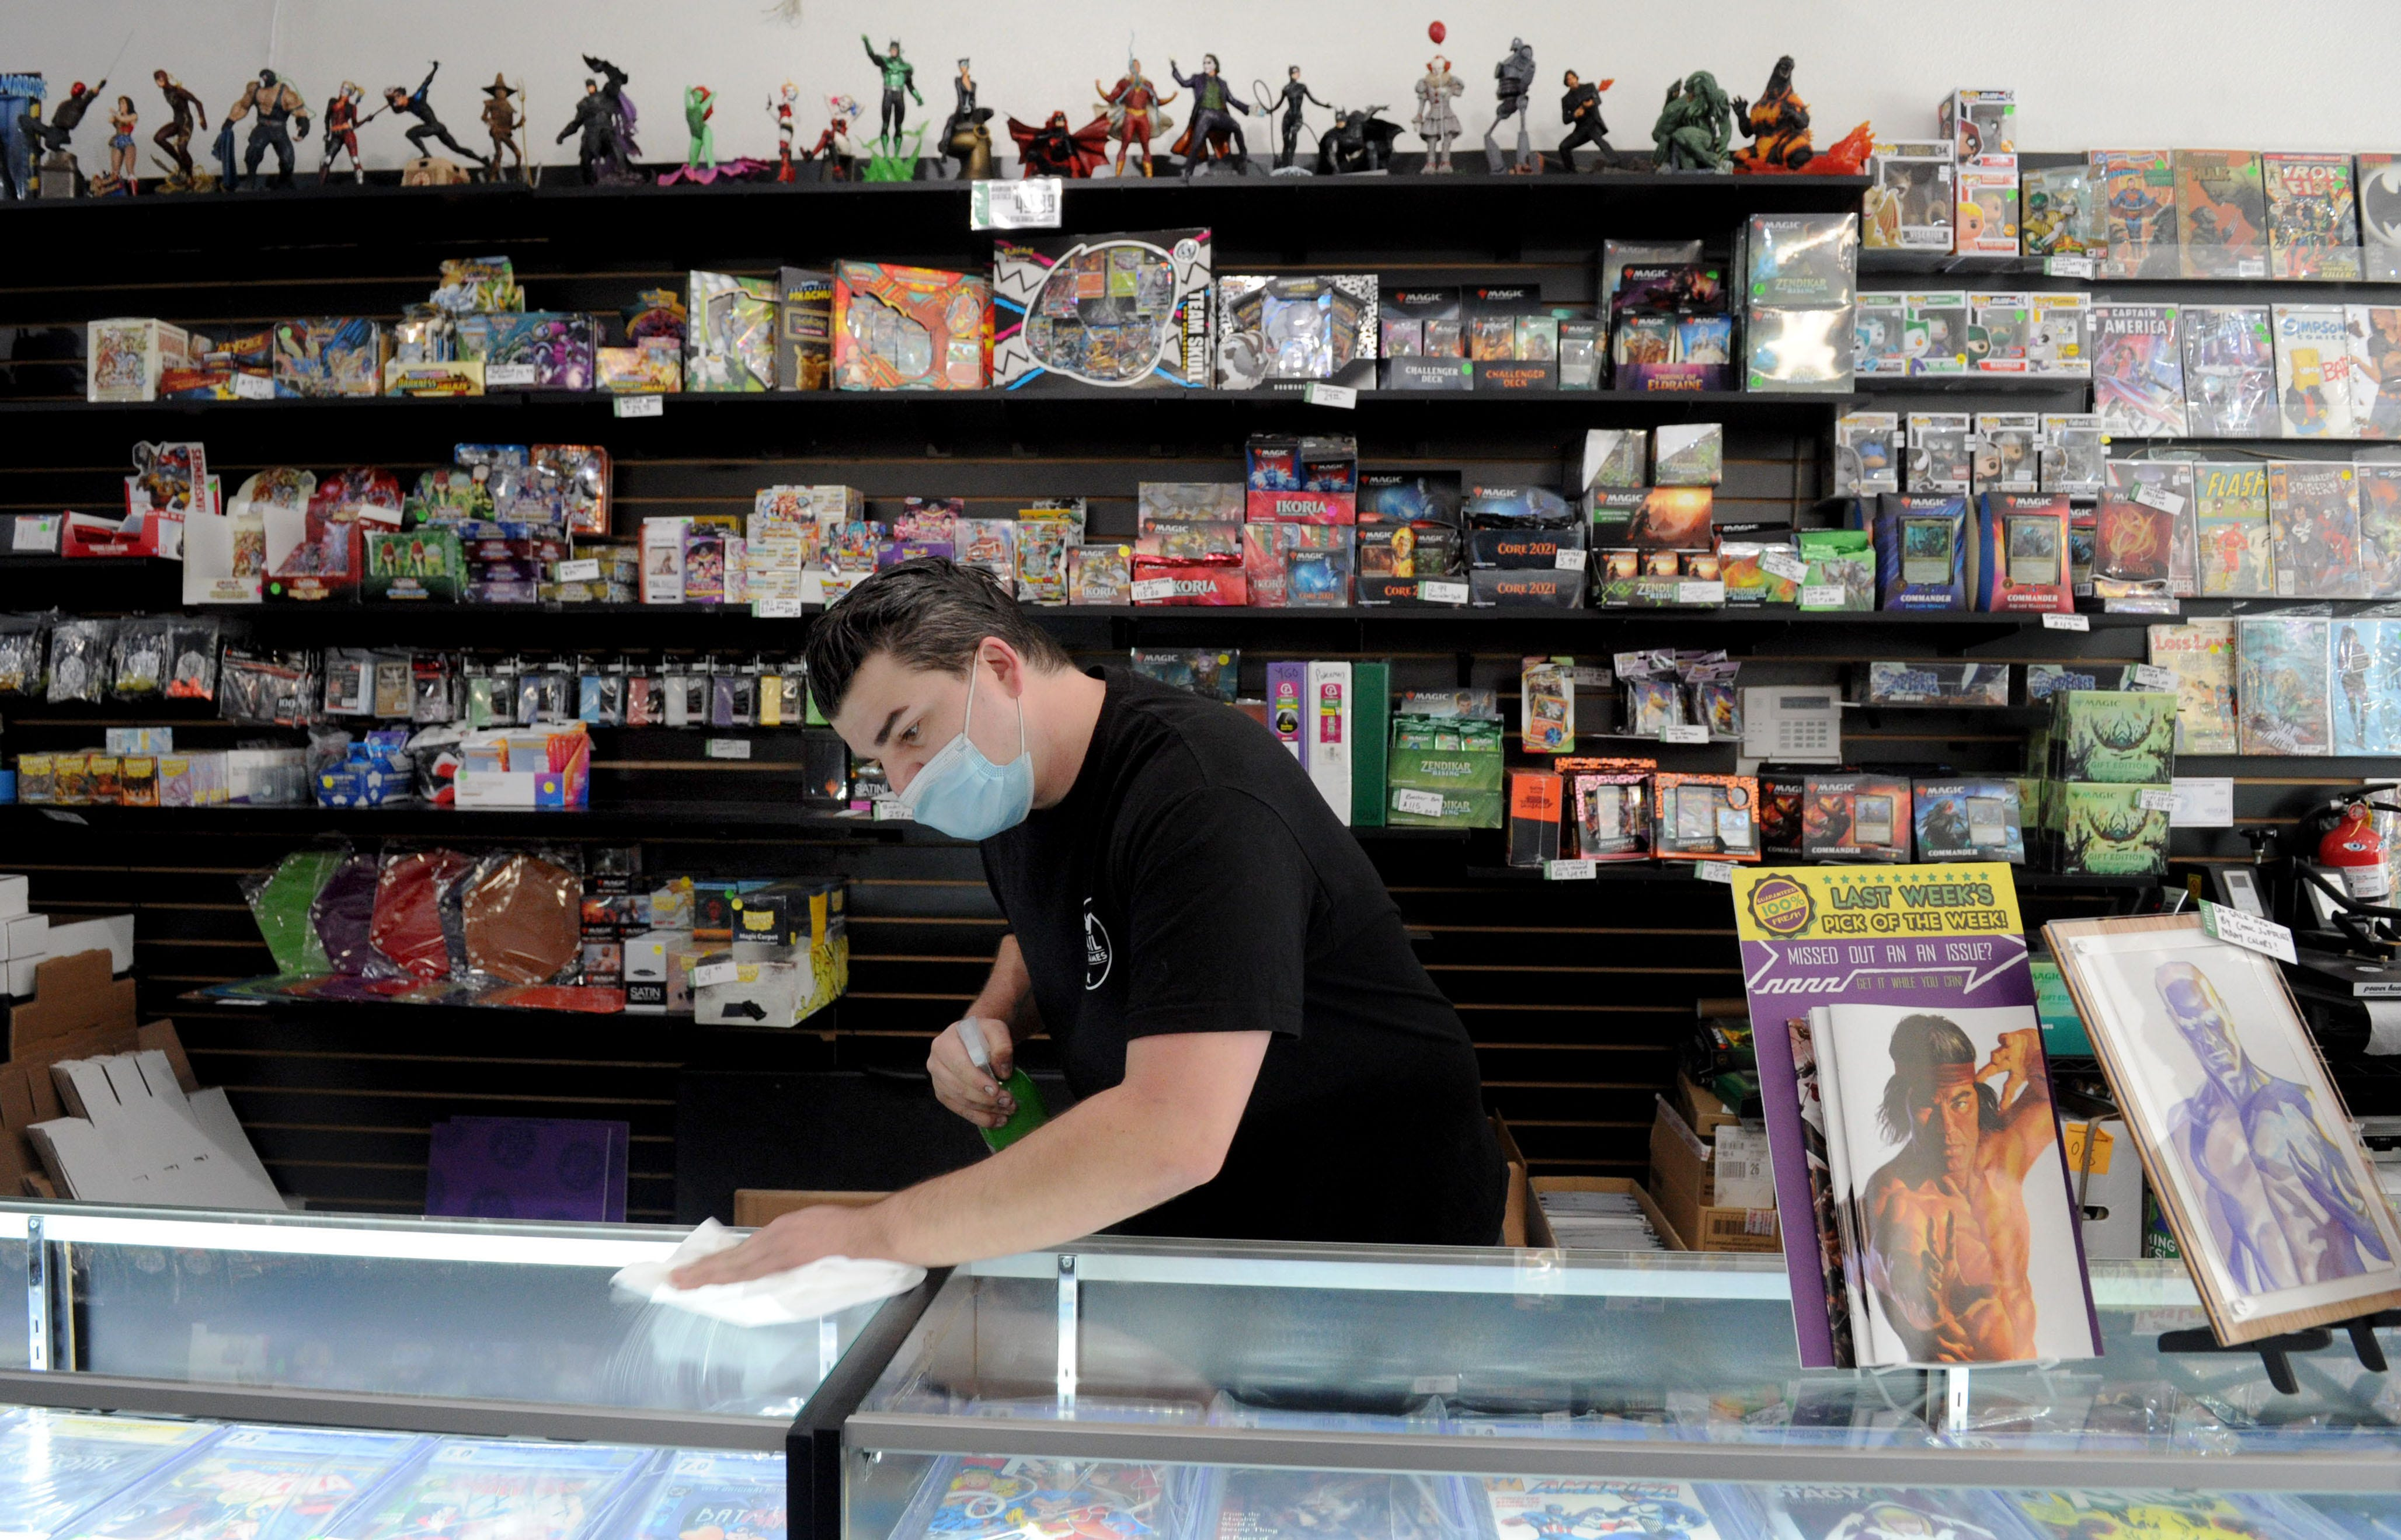 Timmy Heague, owner of Arsenal Comics & Games, sanitizes a display case at his store in Ventura on Thursday, Nov. 19, 2020. As a small business owner, Heague has had to adapt the way he does business to ensure it can stay open.